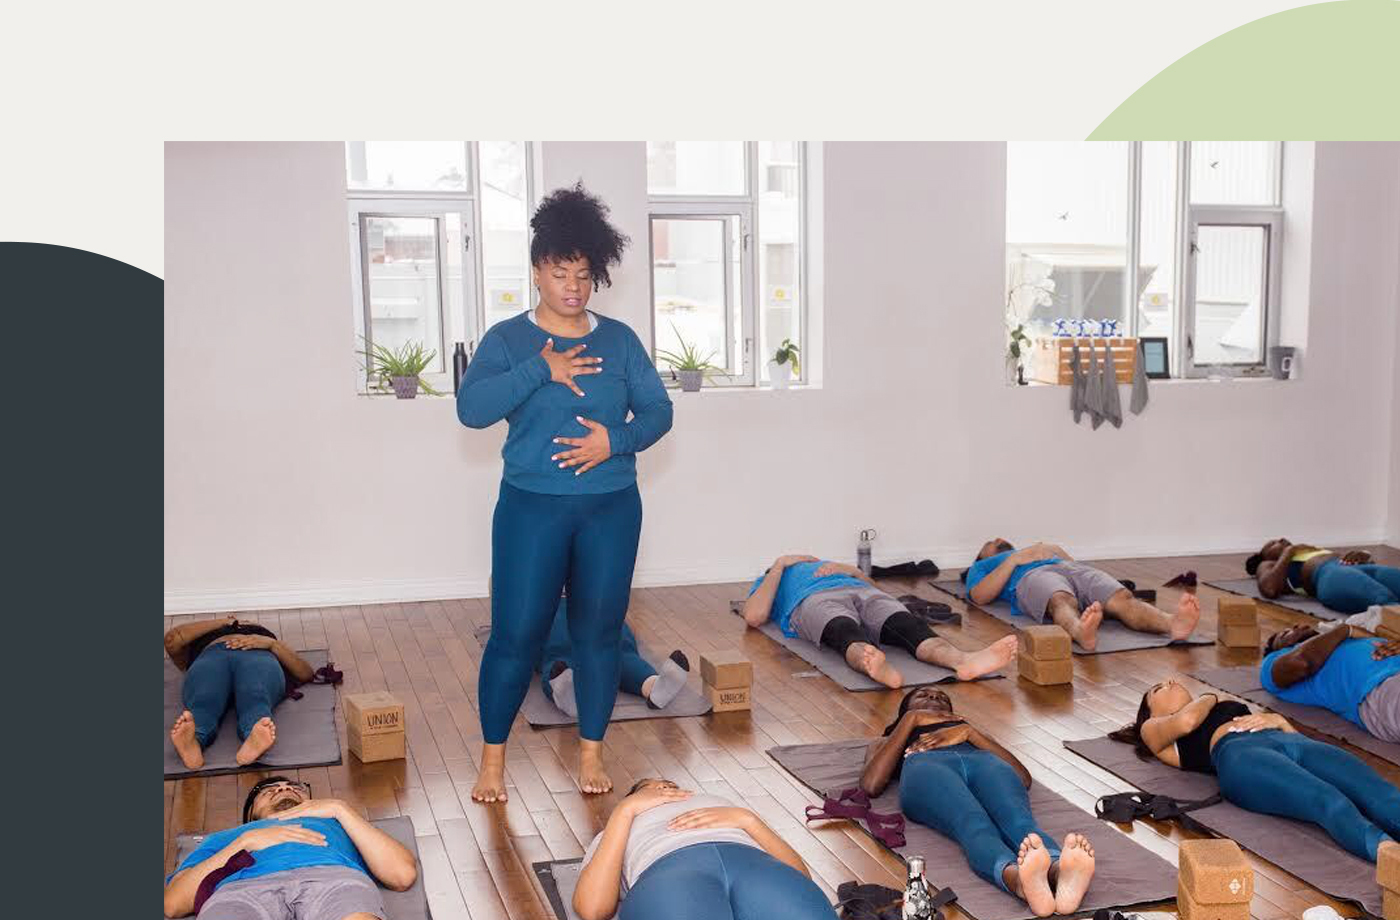 Thumbnail for 'Wellness for All' Won't Be a Reality Until We Decolonize Yoga in the West